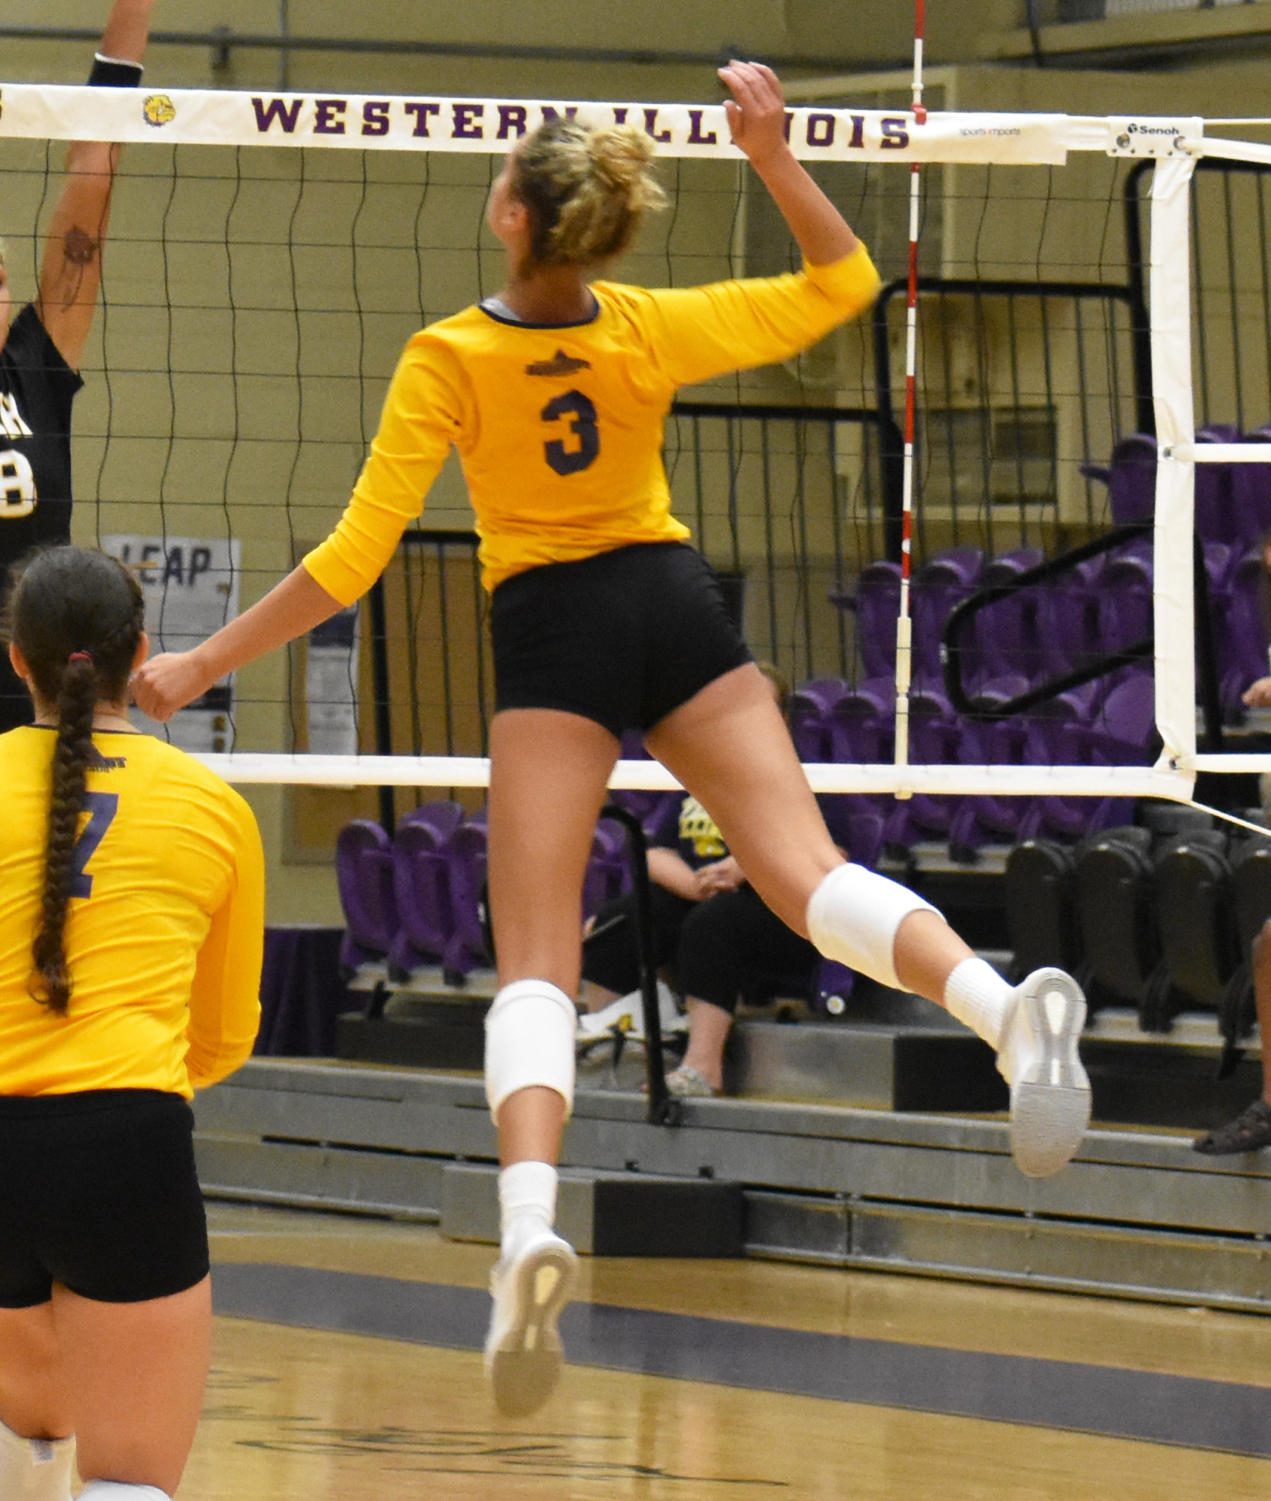 Shiah Sanders goes up for a kill.